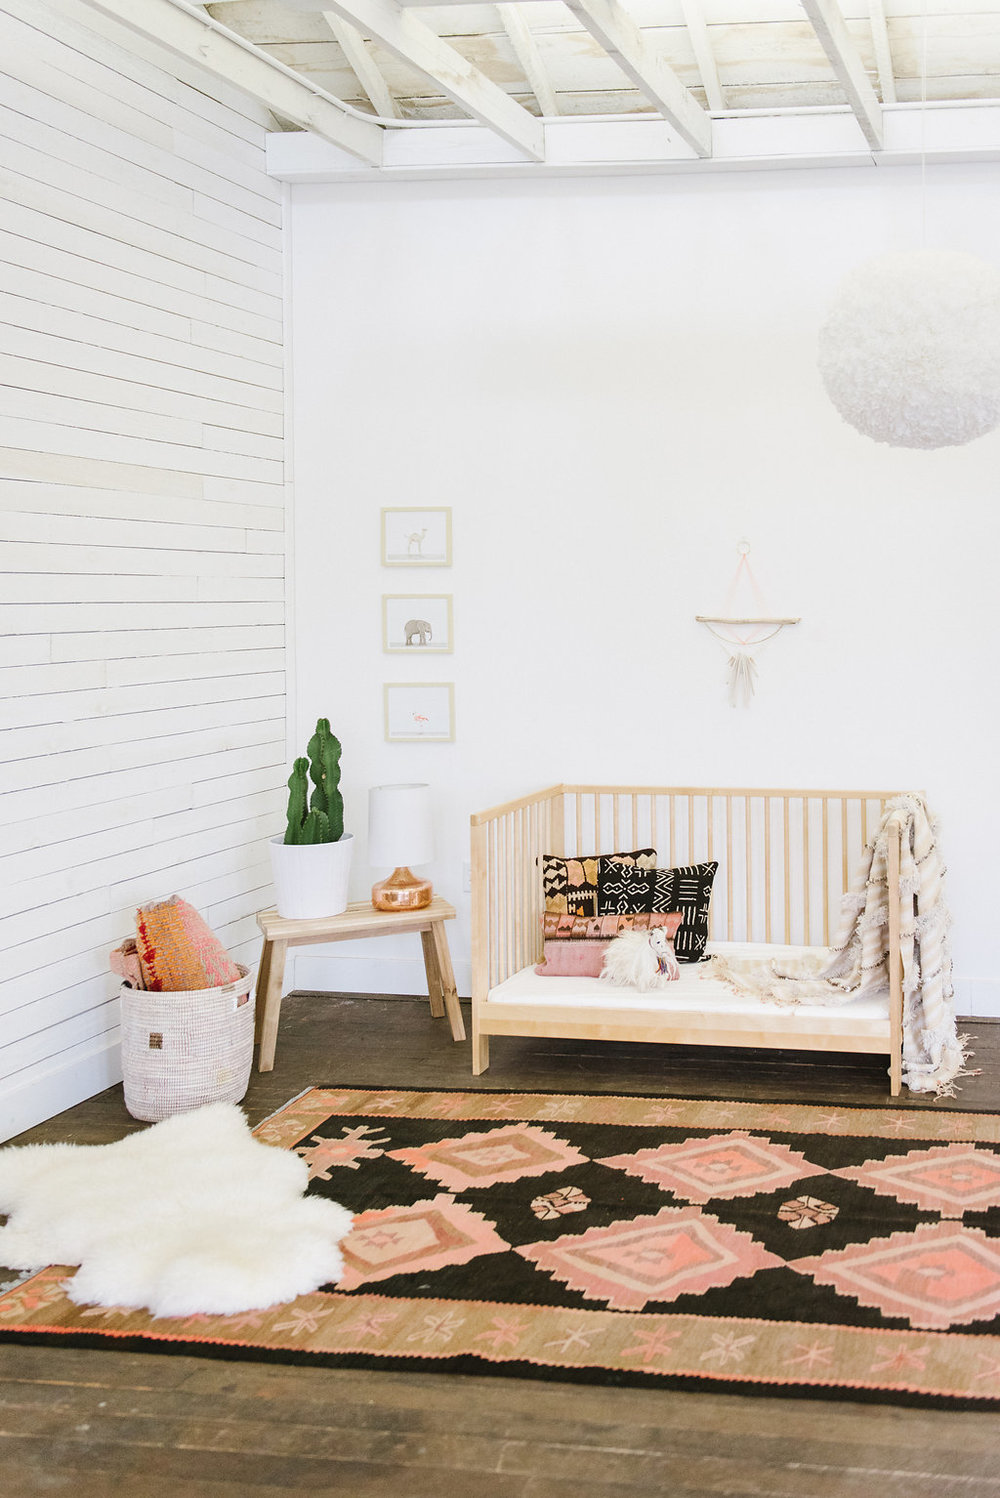 Baby nursery with rug from Loom + Kiln